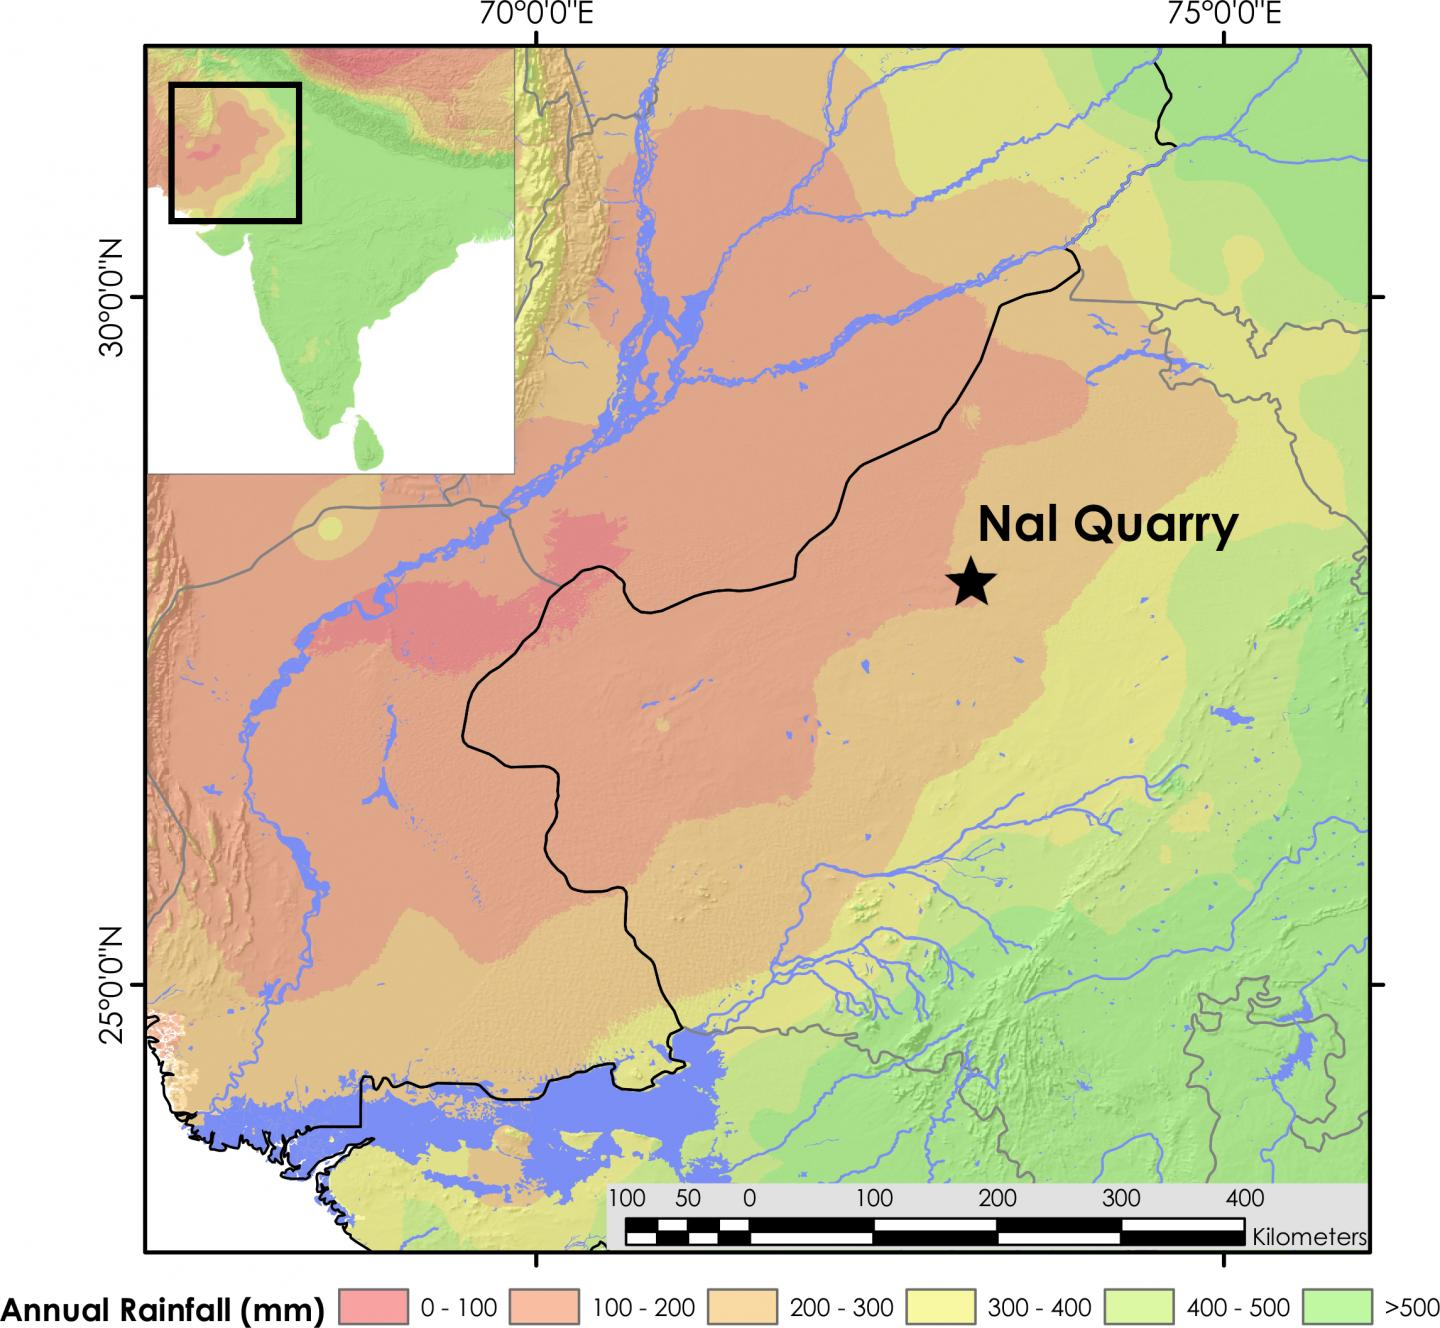 Map showing the location of Nal Quarry